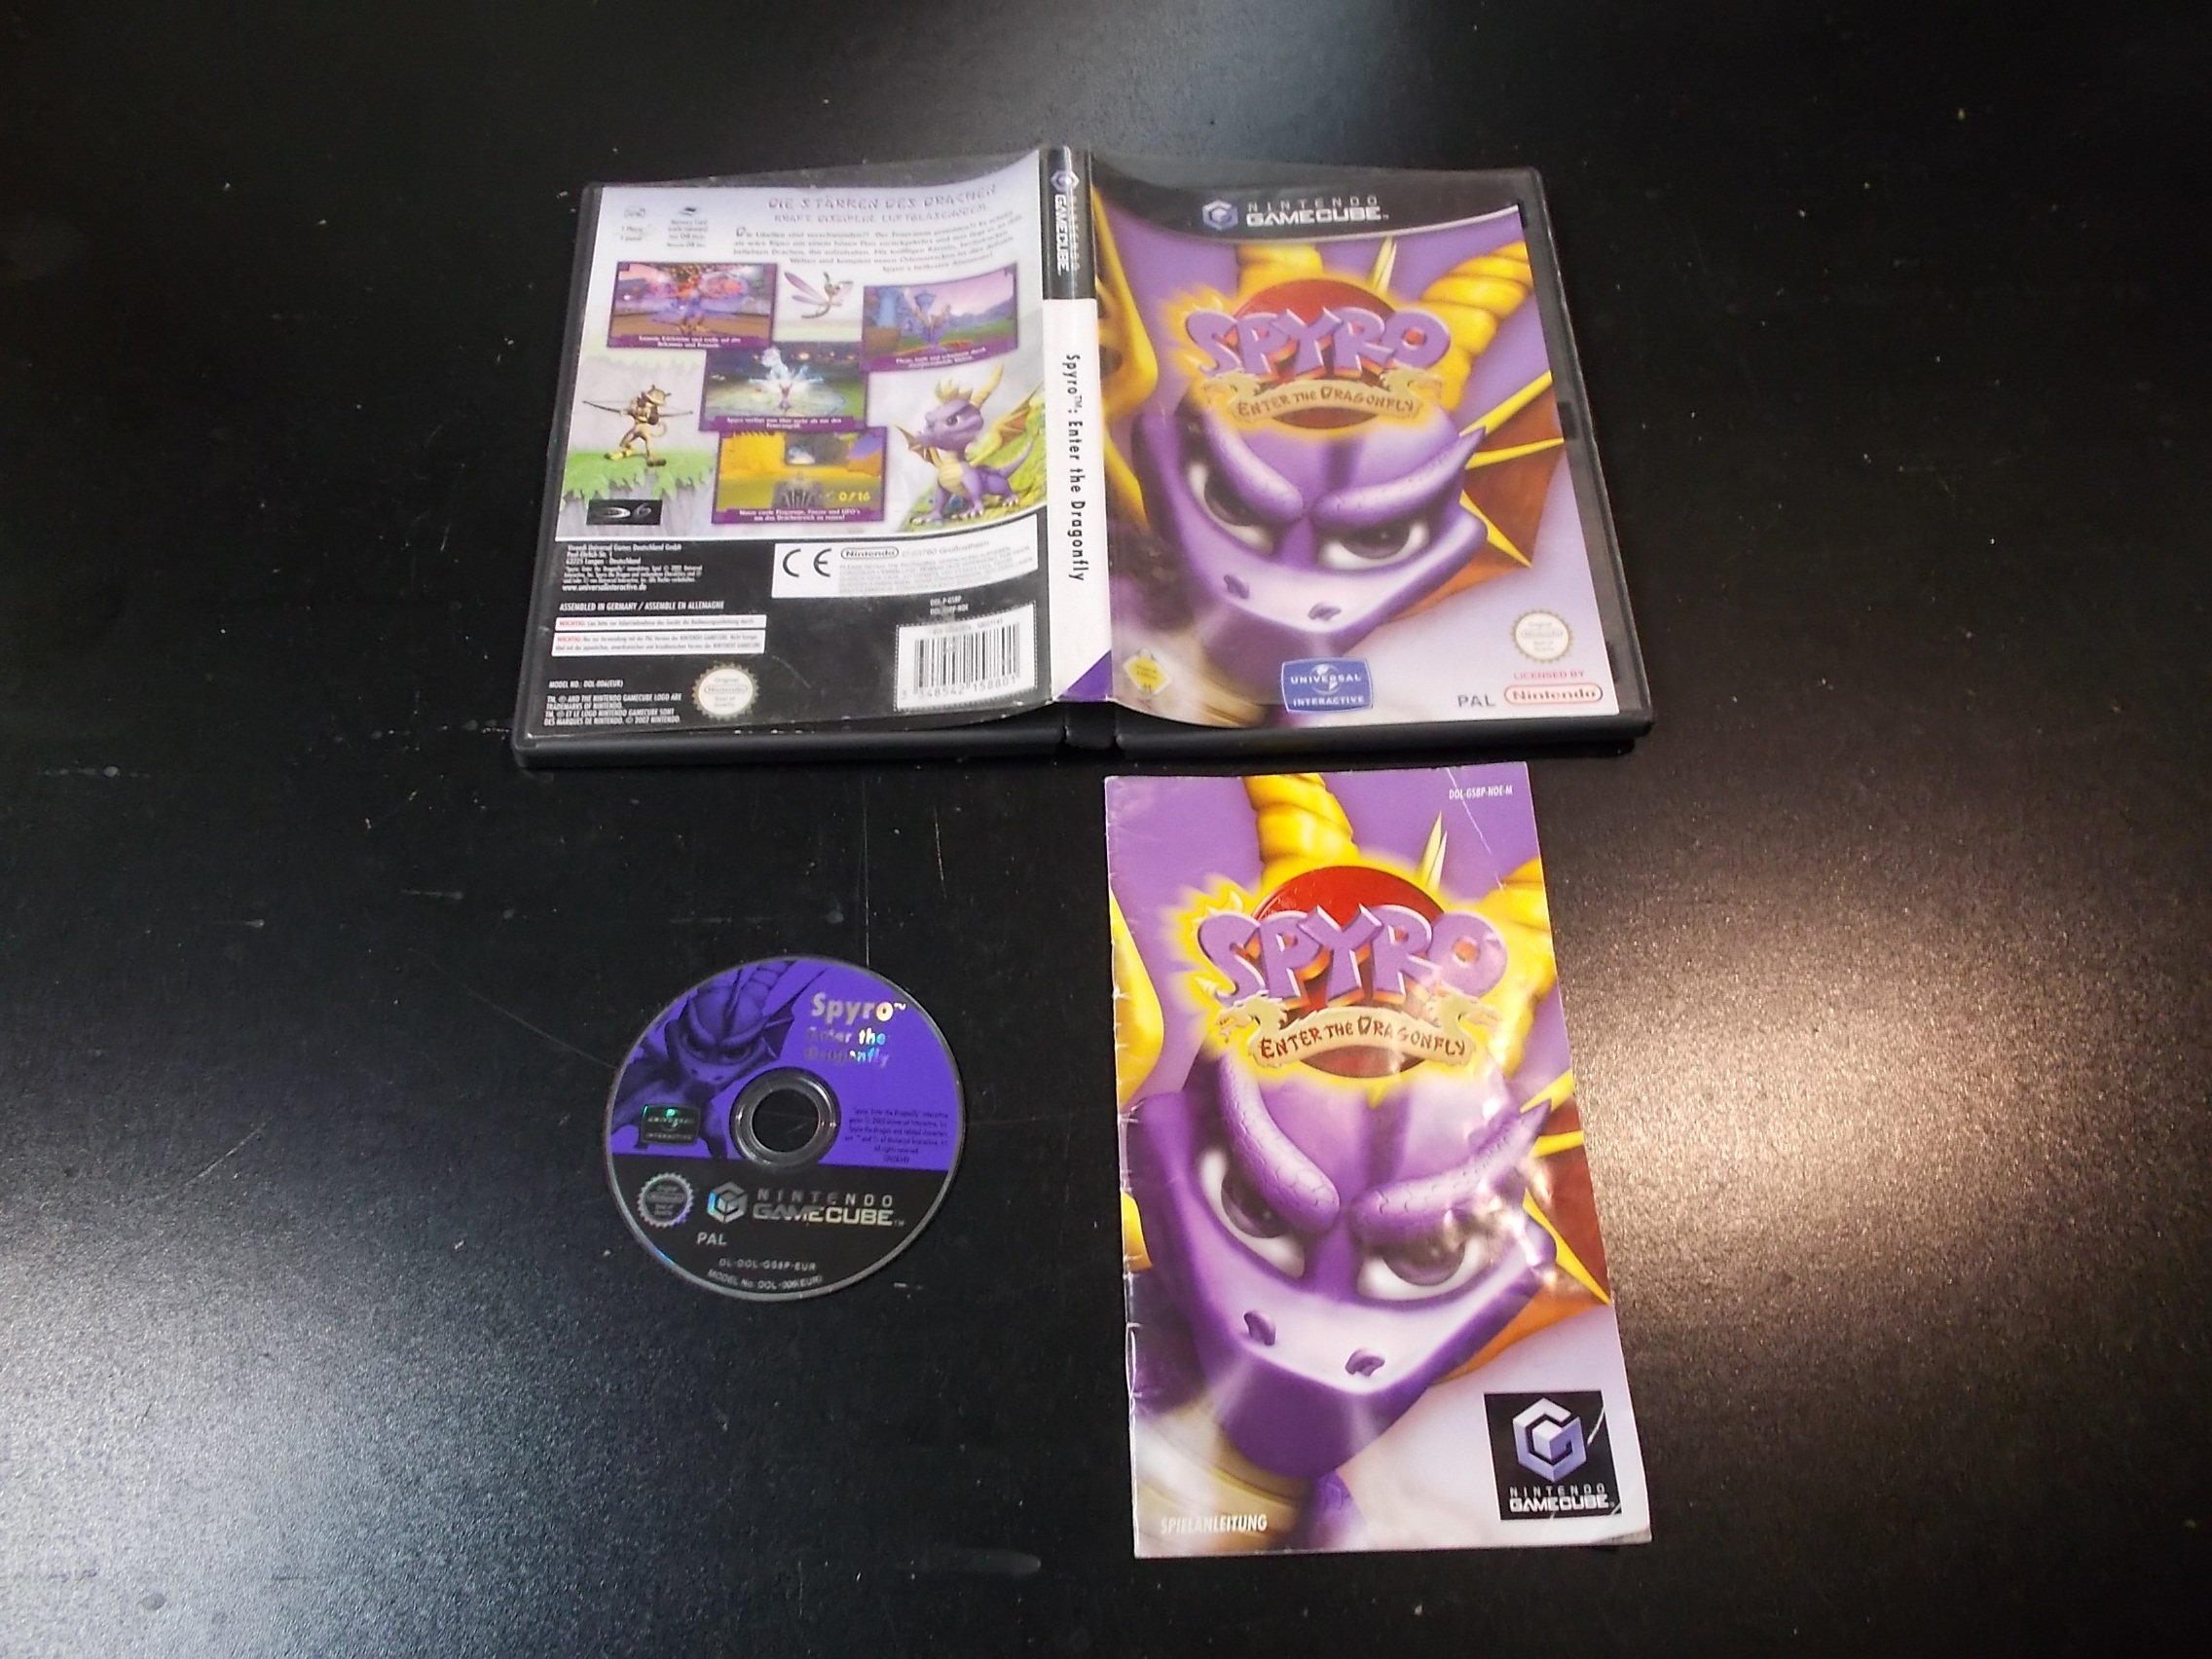 SPYRO Enter the Dragonfly - GRA Nintendo GameCube Sklep